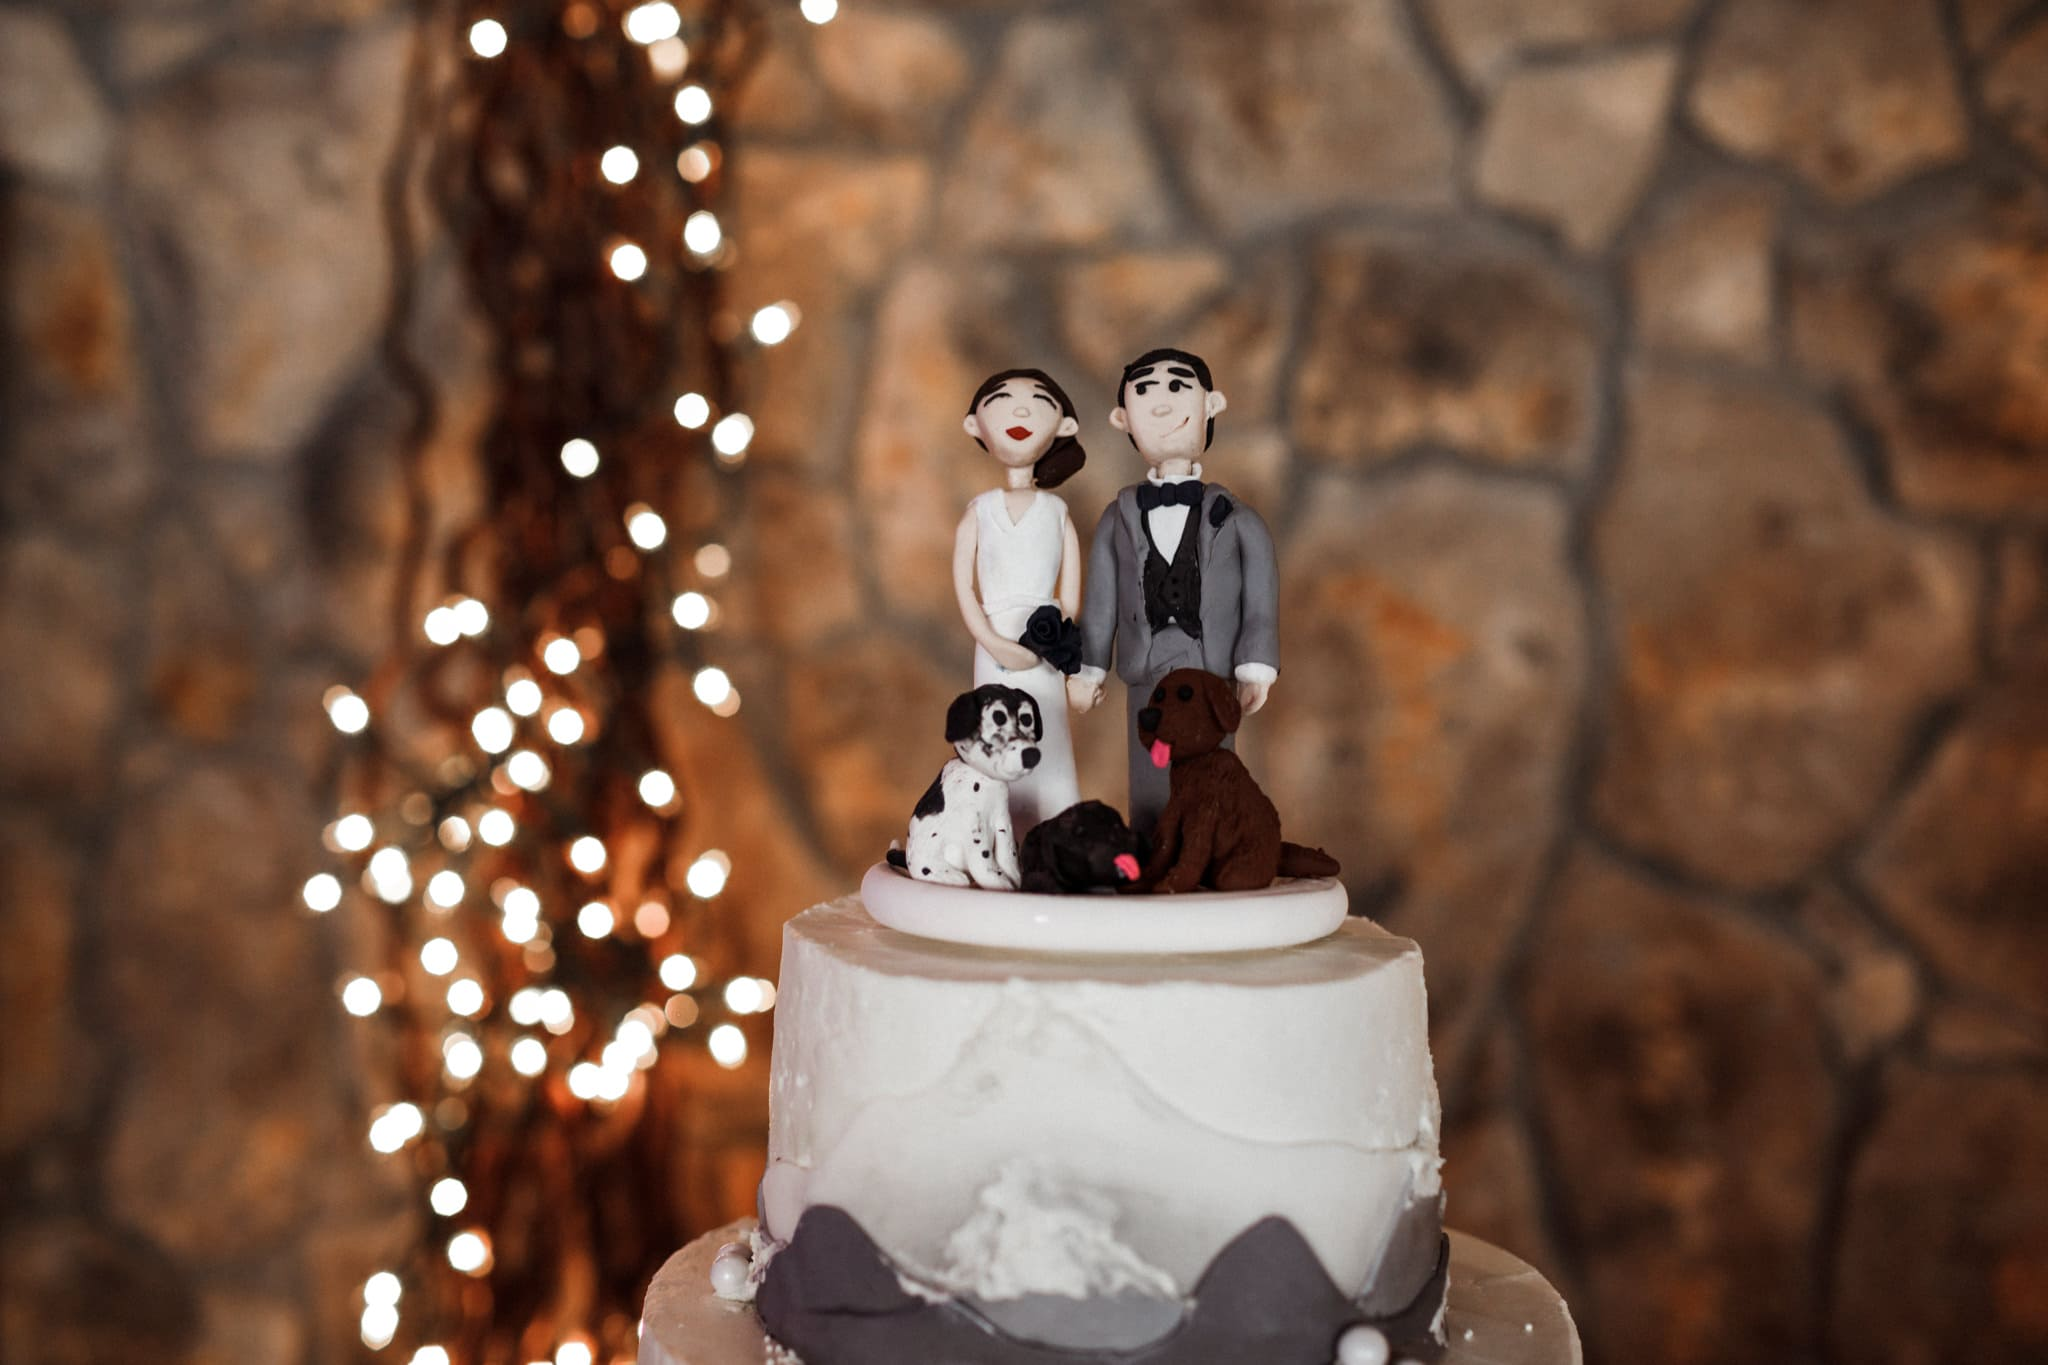 Mountain wedding cake with custom cake topper of bride and groom with their three dogs